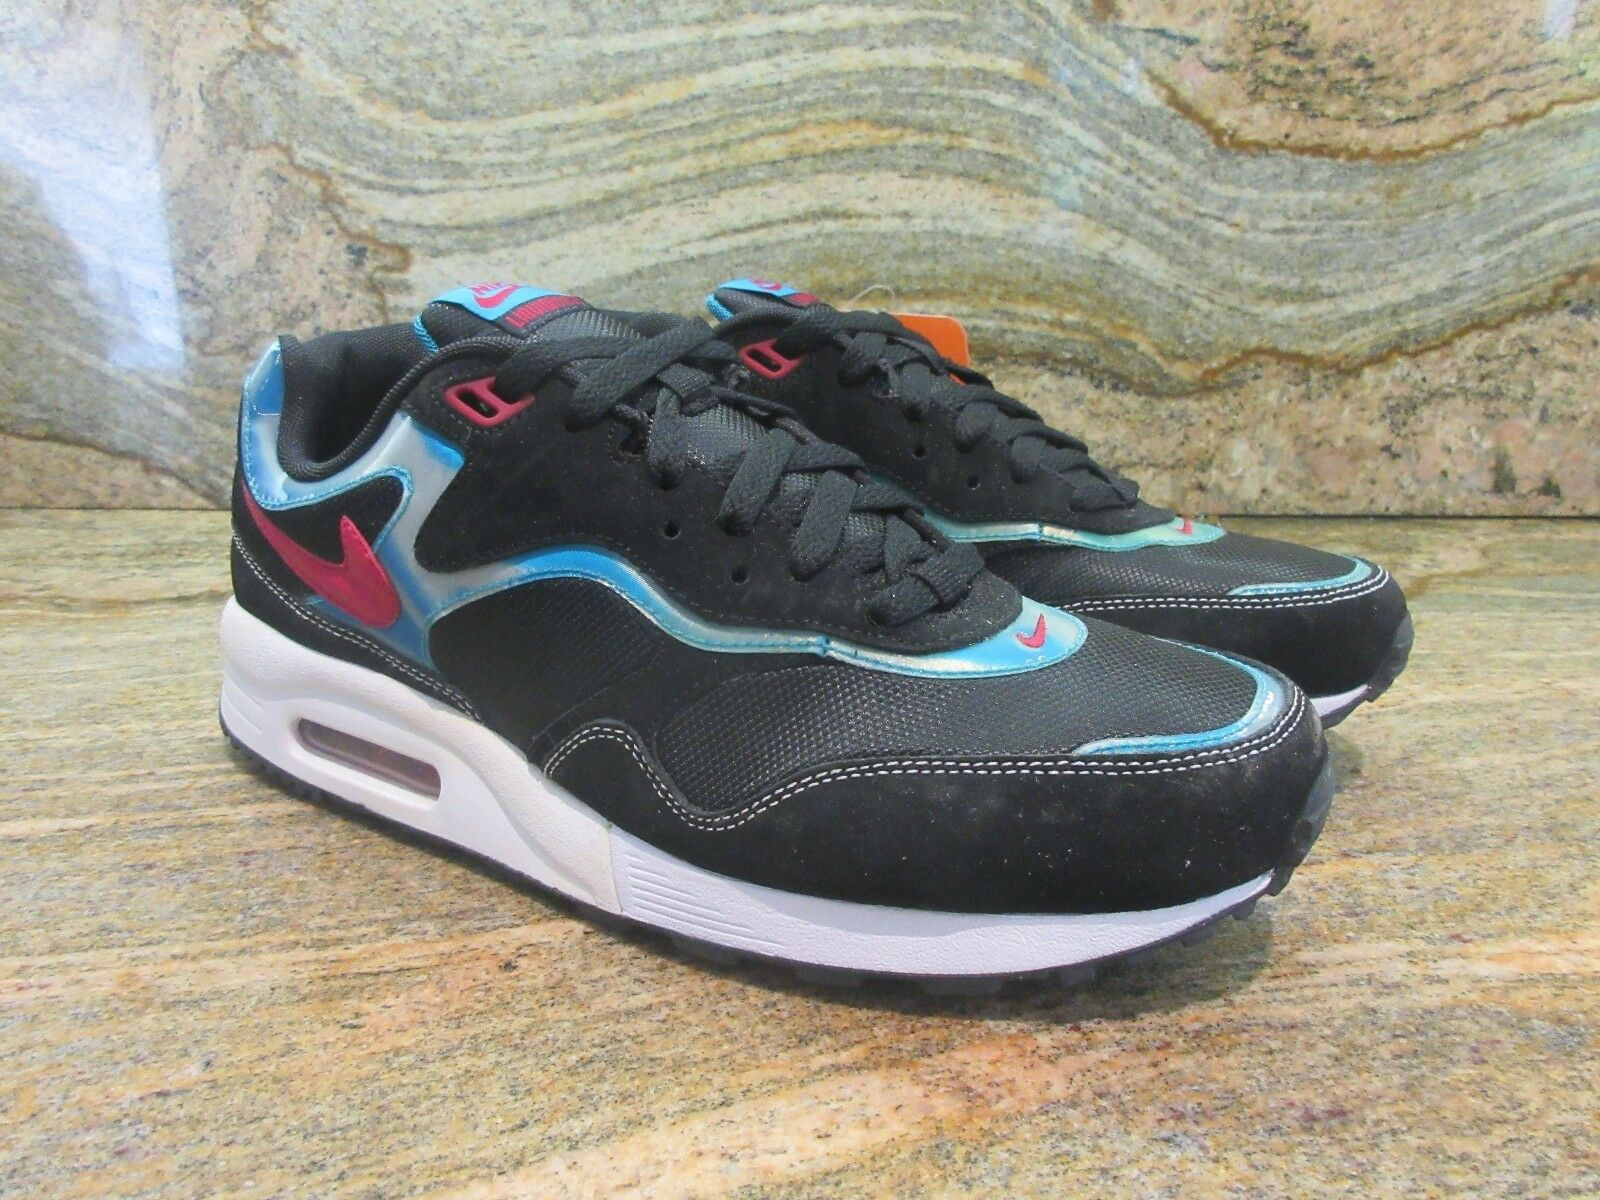 2018 Racer Nike Air Max líquido Racer 2018 muestra Miami South Beach Negro 407613-003 8540d8